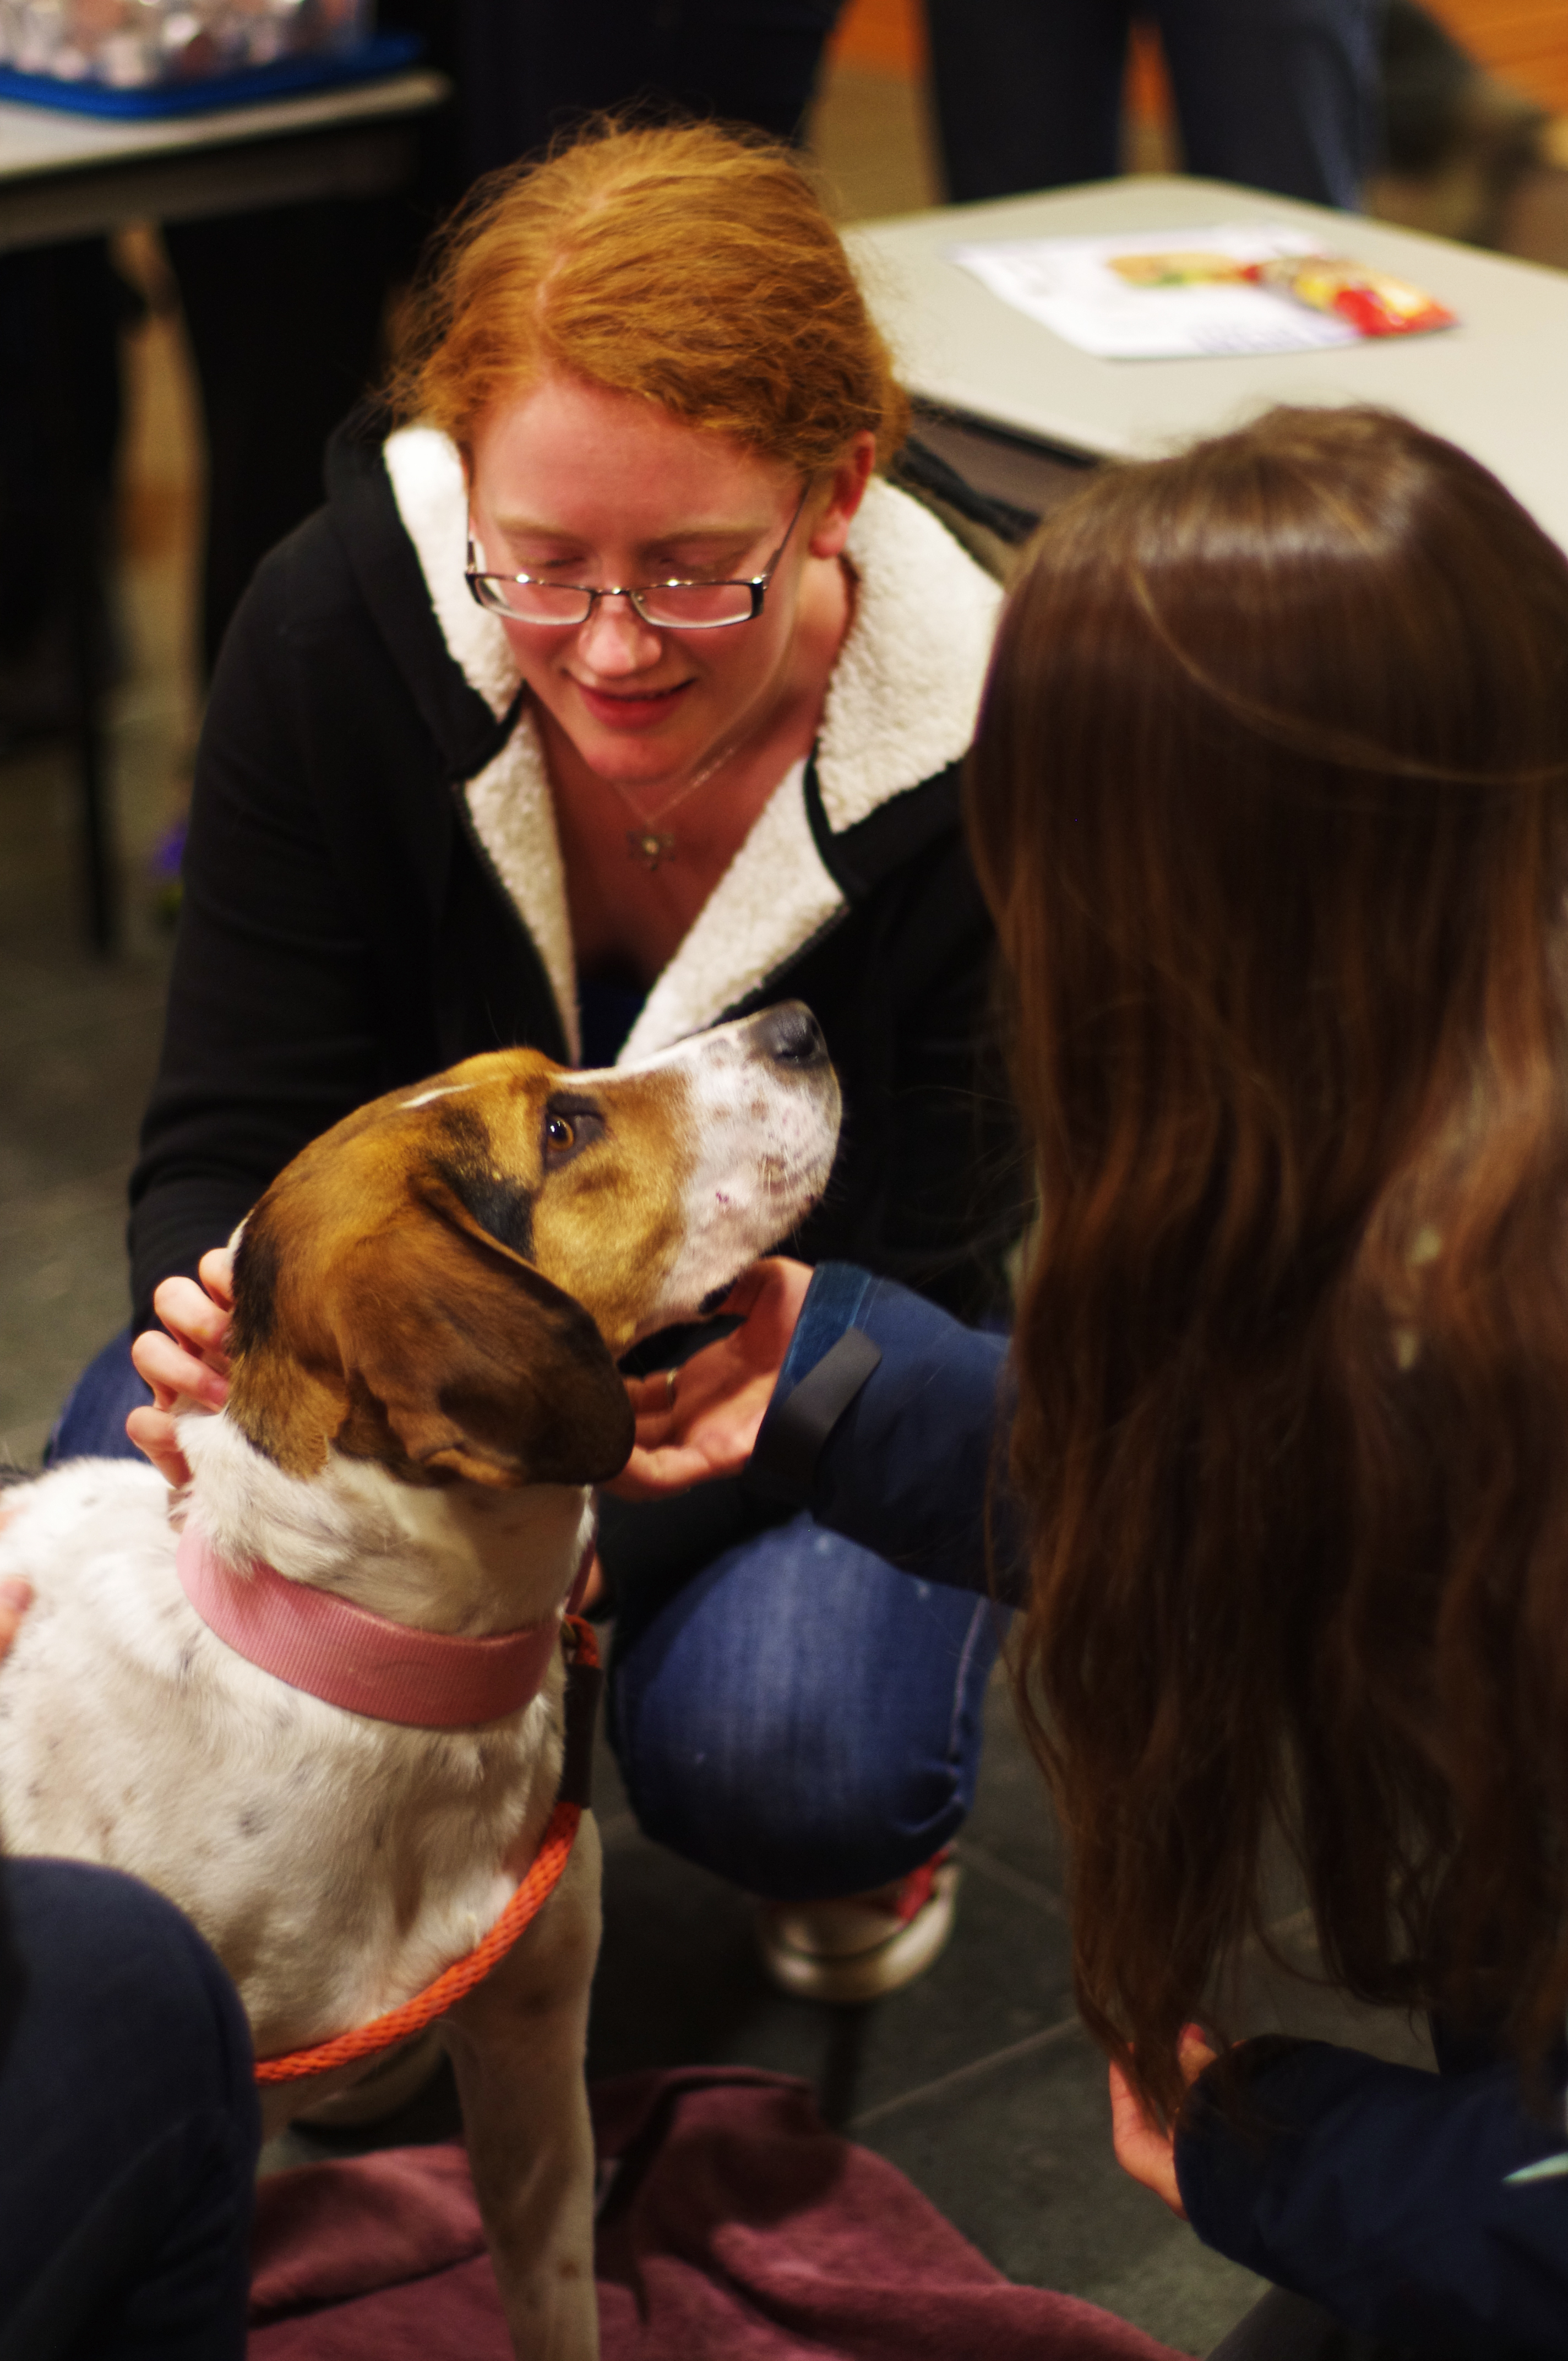 Christie Peterson and Emiliy Stuchiner (both '15) play with puppies at the Wellness Fair Tuesday evening at the JRC. Photo by Joanna Silverman.